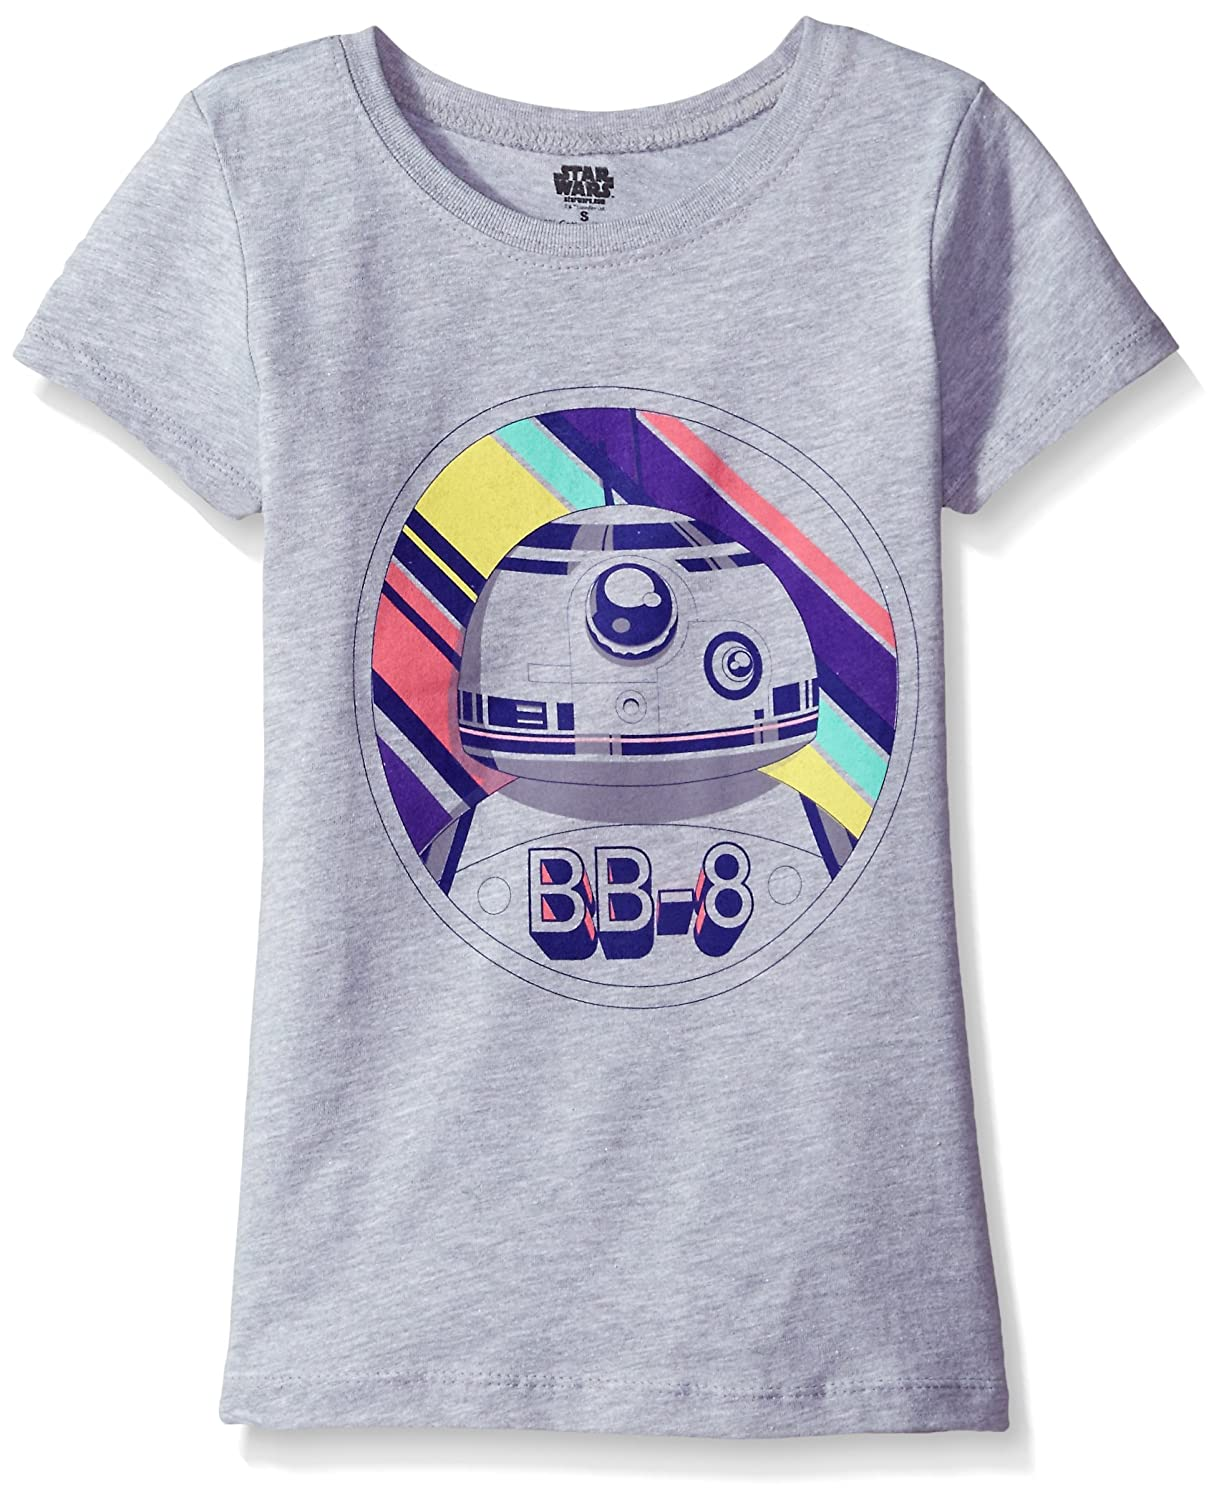 Star Wars Big Girls' The Force Awakens Episode 7 BB-8 Graphic Tee Freeze Children's Apparel GYSS032-3s55